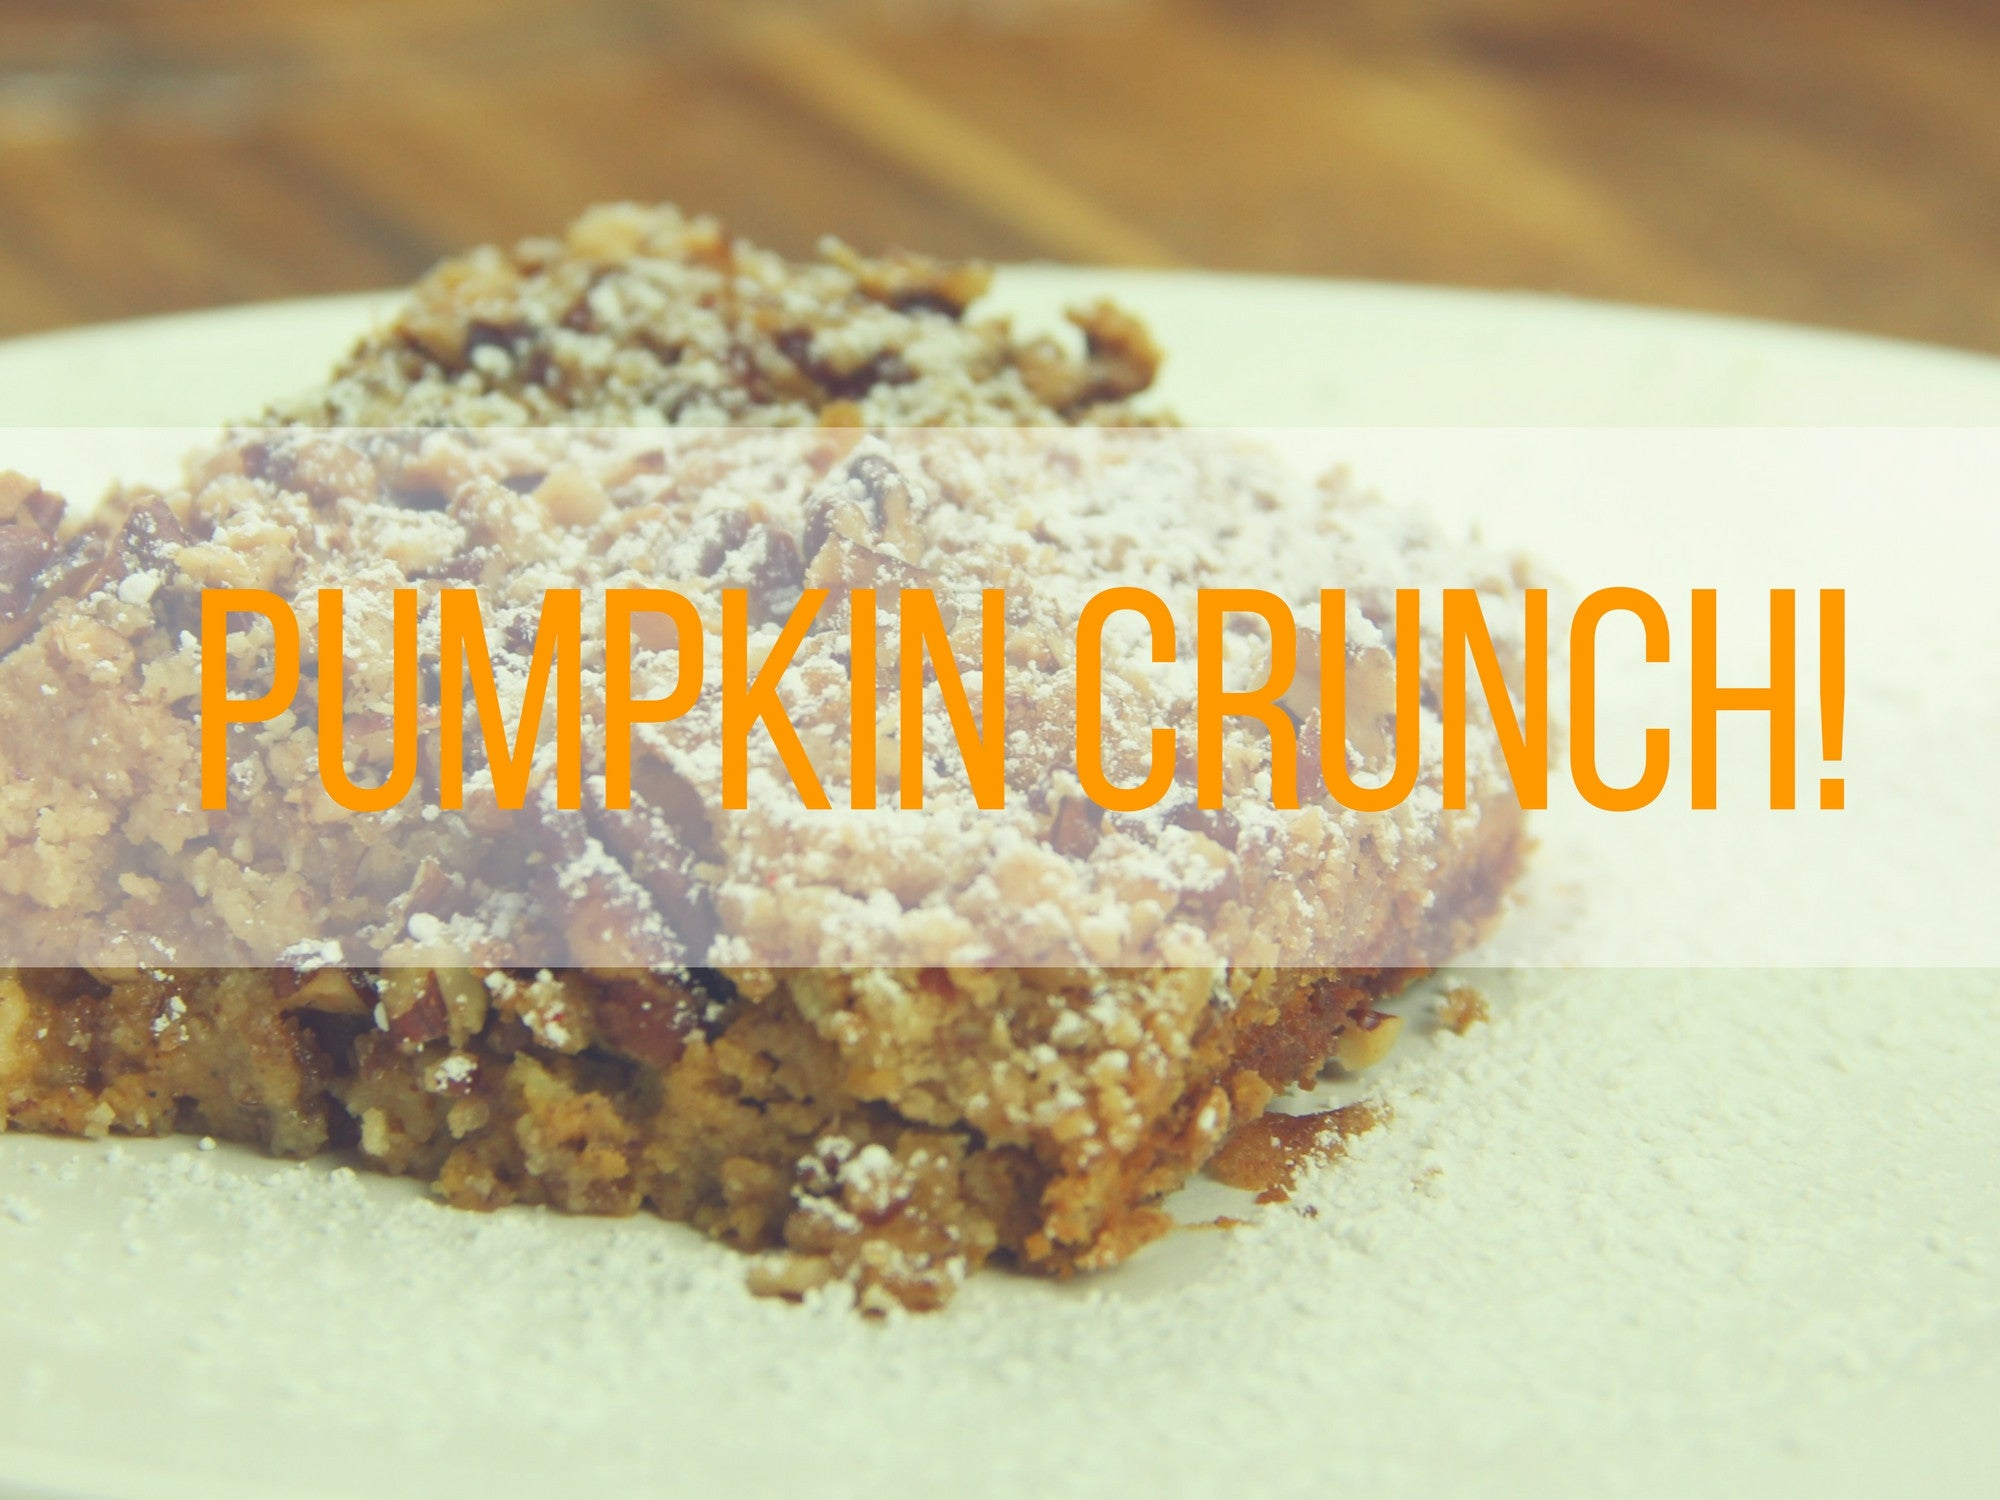 Pumpkin Crunch!